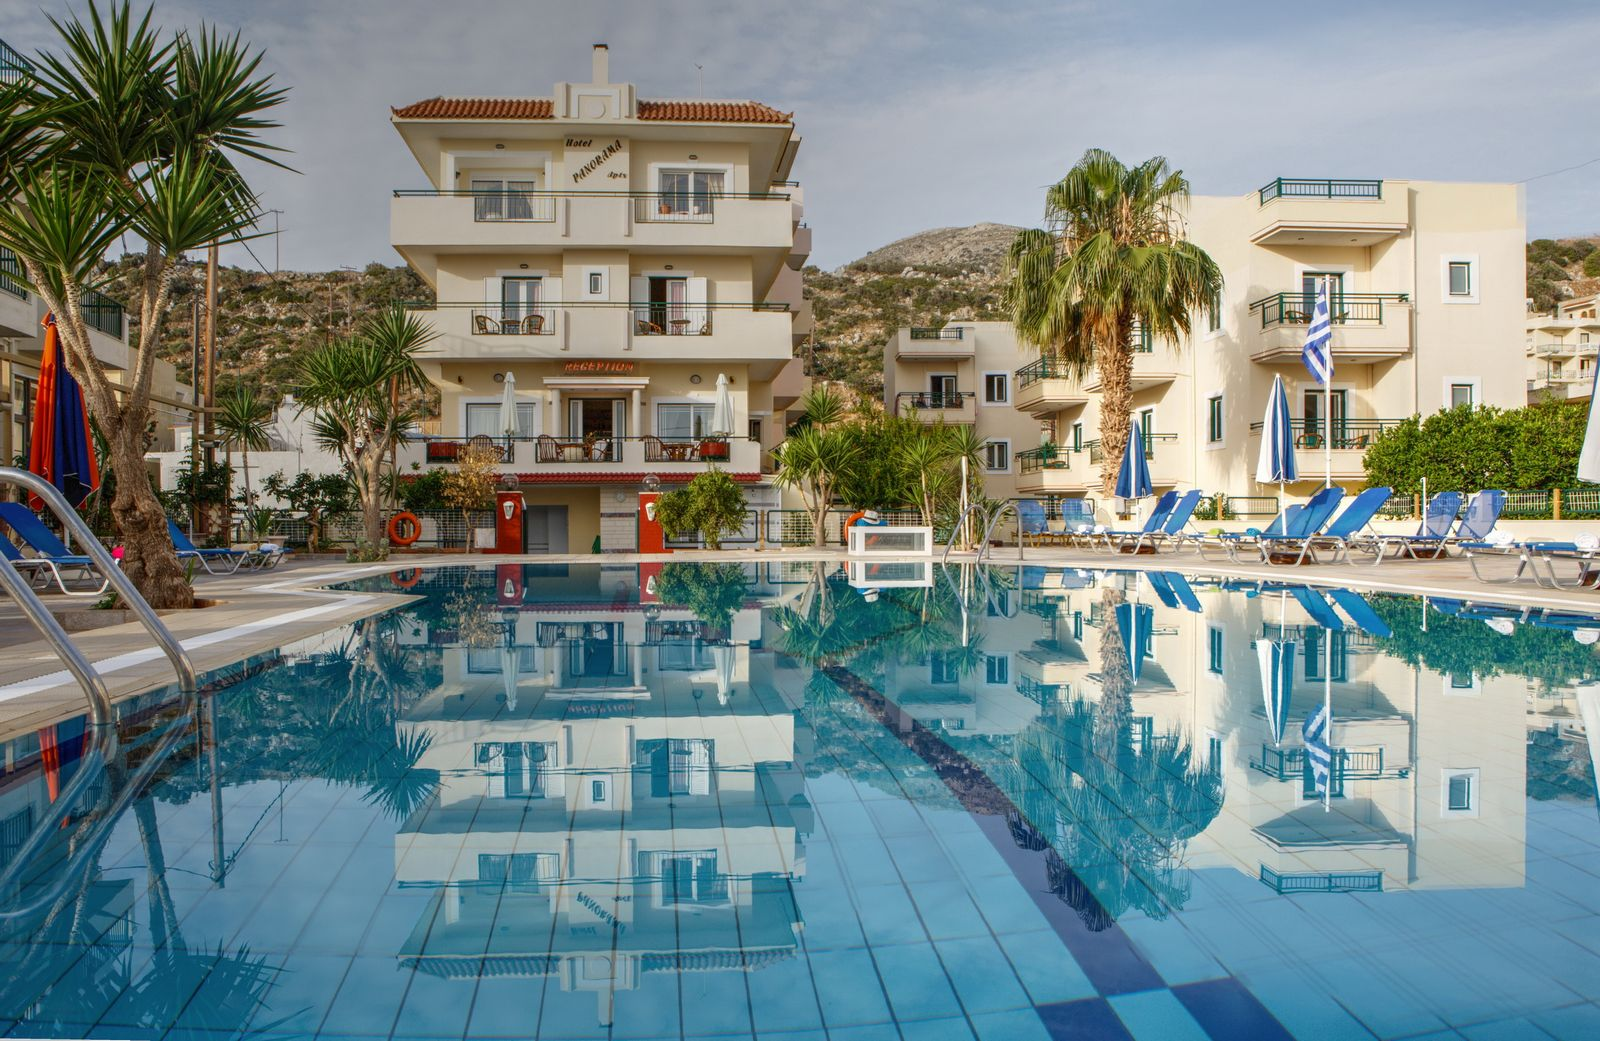 Panorama Hotel and Apartments in the center of Stalis - Crete